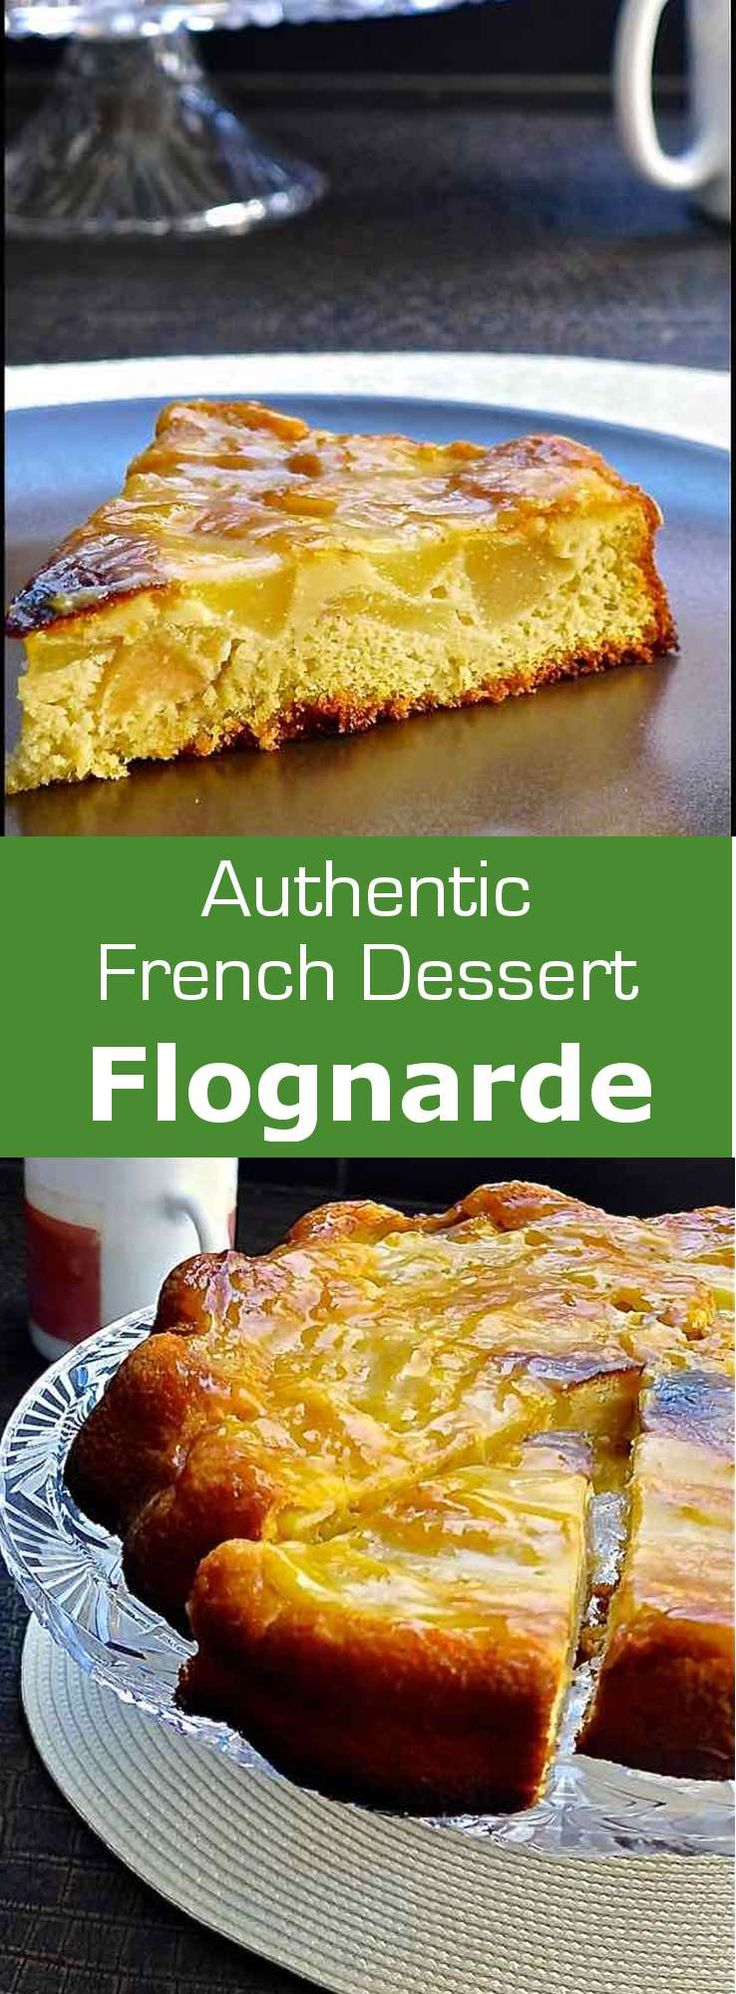 Best 25+ Famous french food ideas on Pinterest | Famous ...